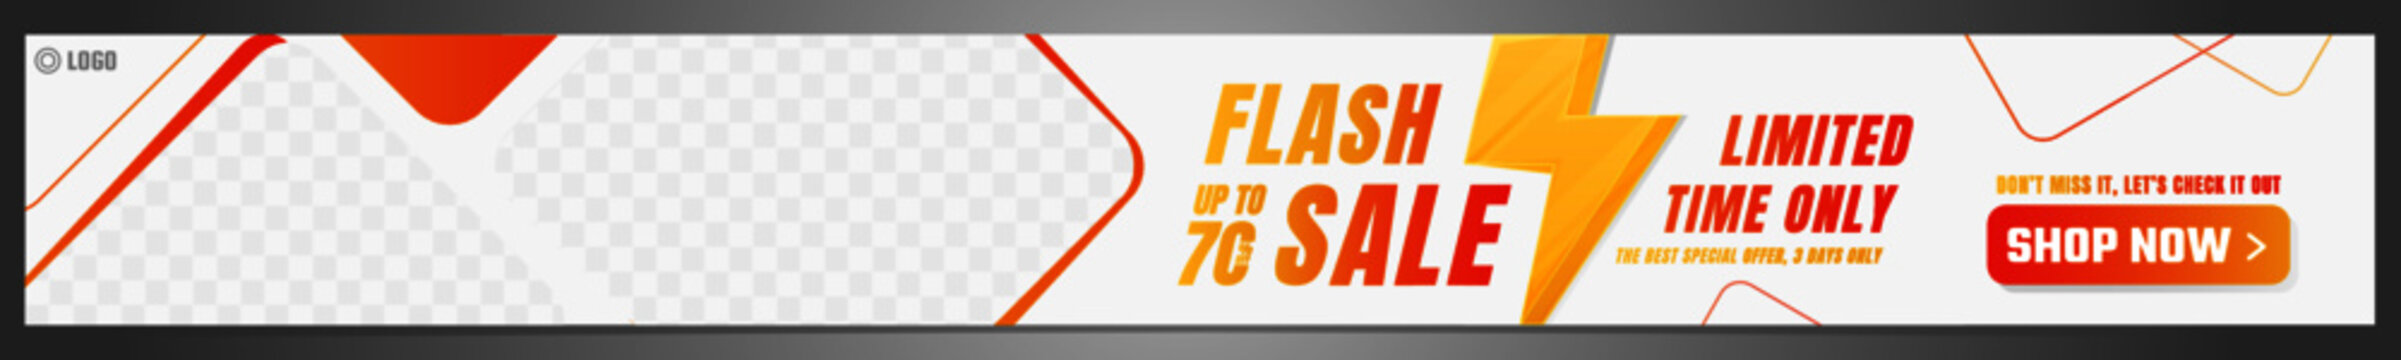 Flash Sale Banner with thunder sign and space for your image. Standard size for leaderboard. Vector illustration